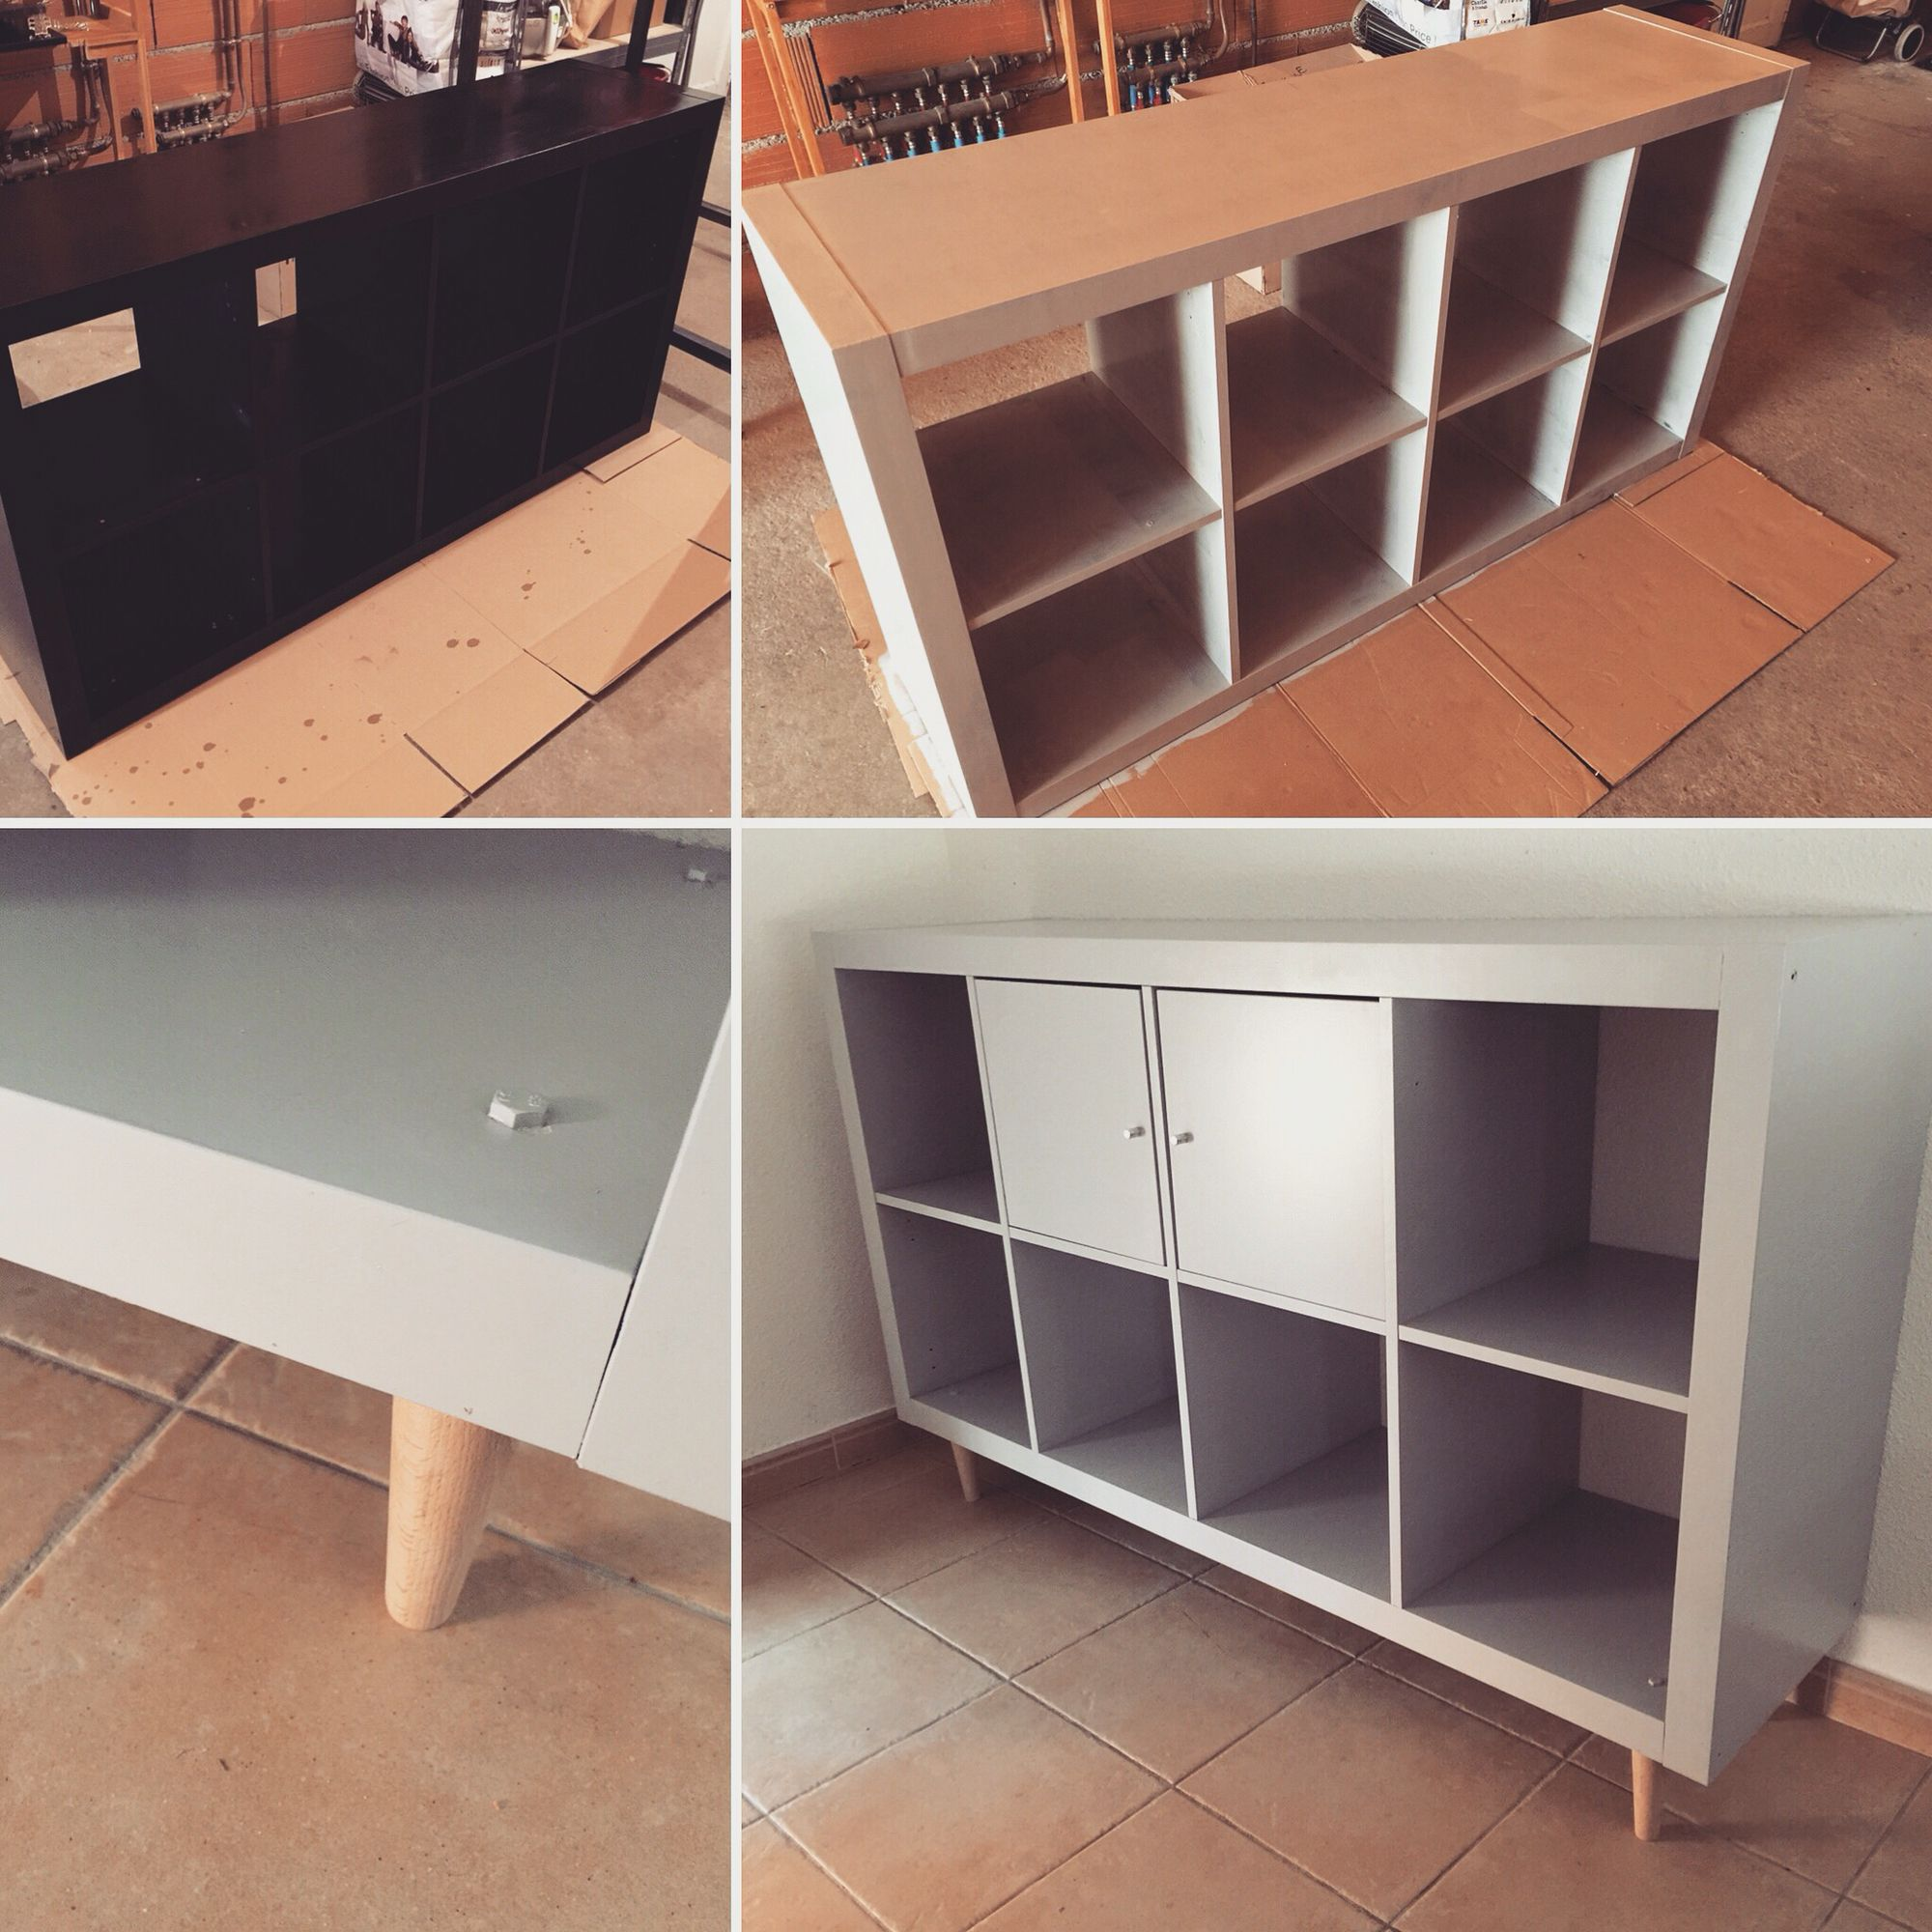 Customisation Meuble Ikea - Customiser Un Meuble Ikea Kallax Ou Expedit Cr Ation By Delph Ine [mjhdah]http://bfrench.info/wp-content/uploads/2017/12/customisation-meuble-dix-conseils-pour-customiser-ses-meubles-ikea-madame-figaro-of-customisation-meuble.jpg